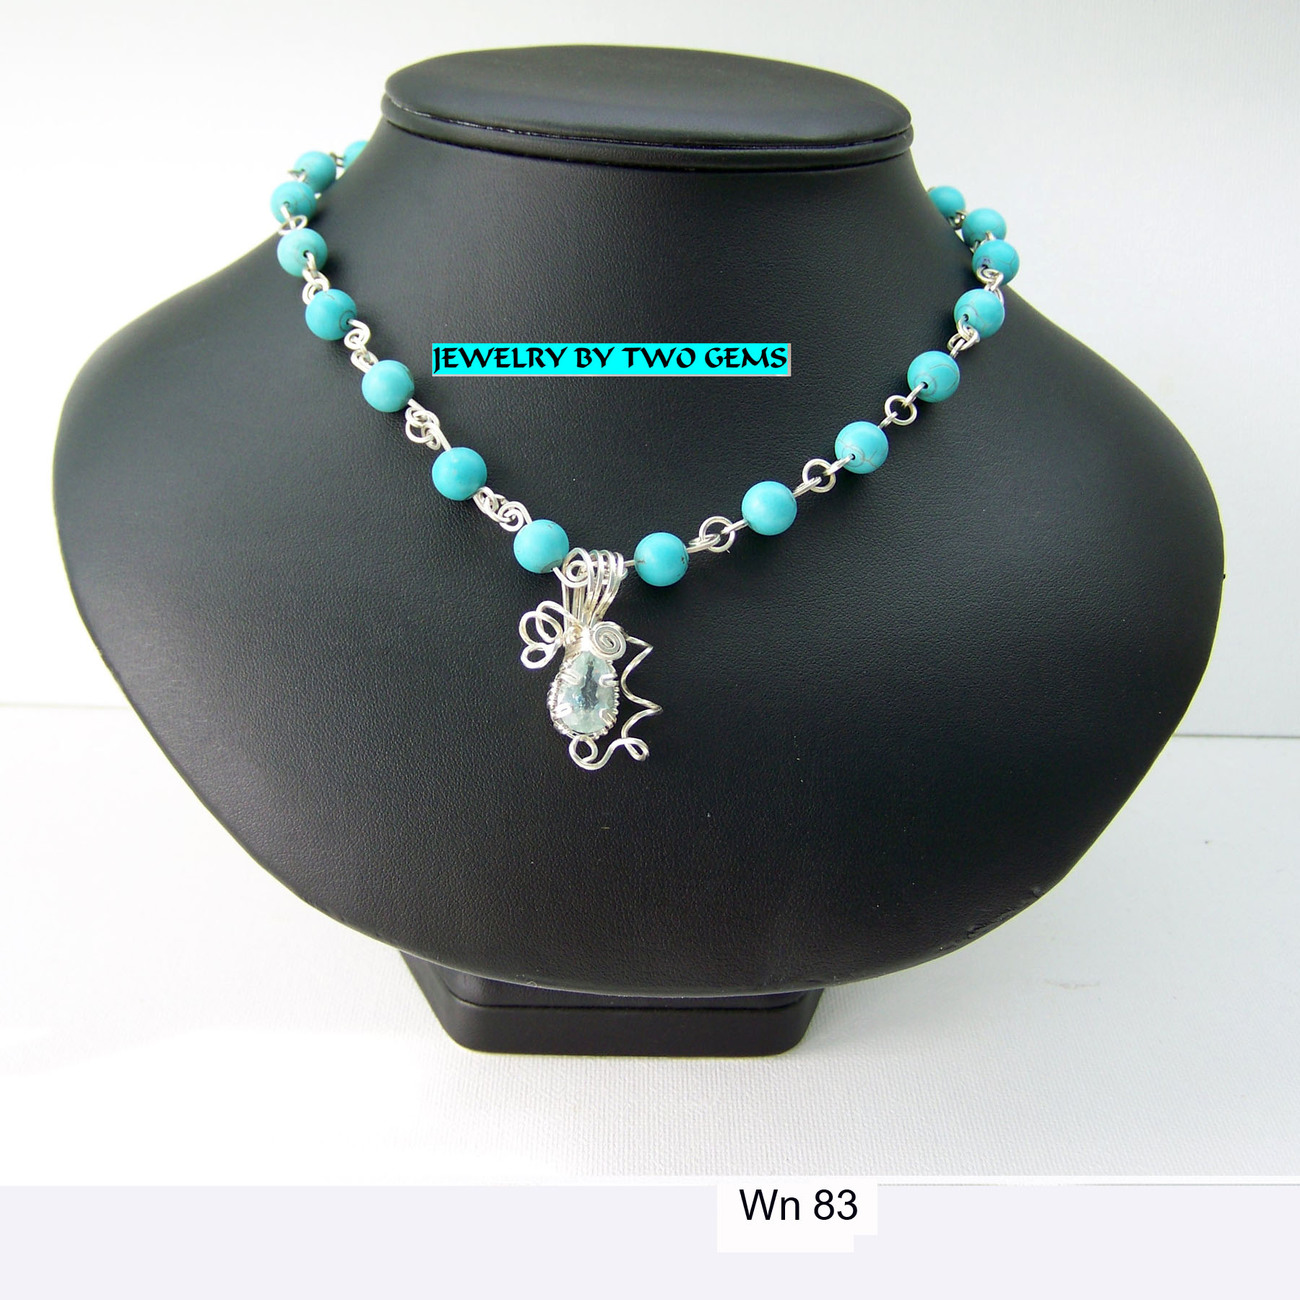 Jewelry By Two Gems (Wn83) Sterling Silver Faceted Aqua w Turquoise Necklace